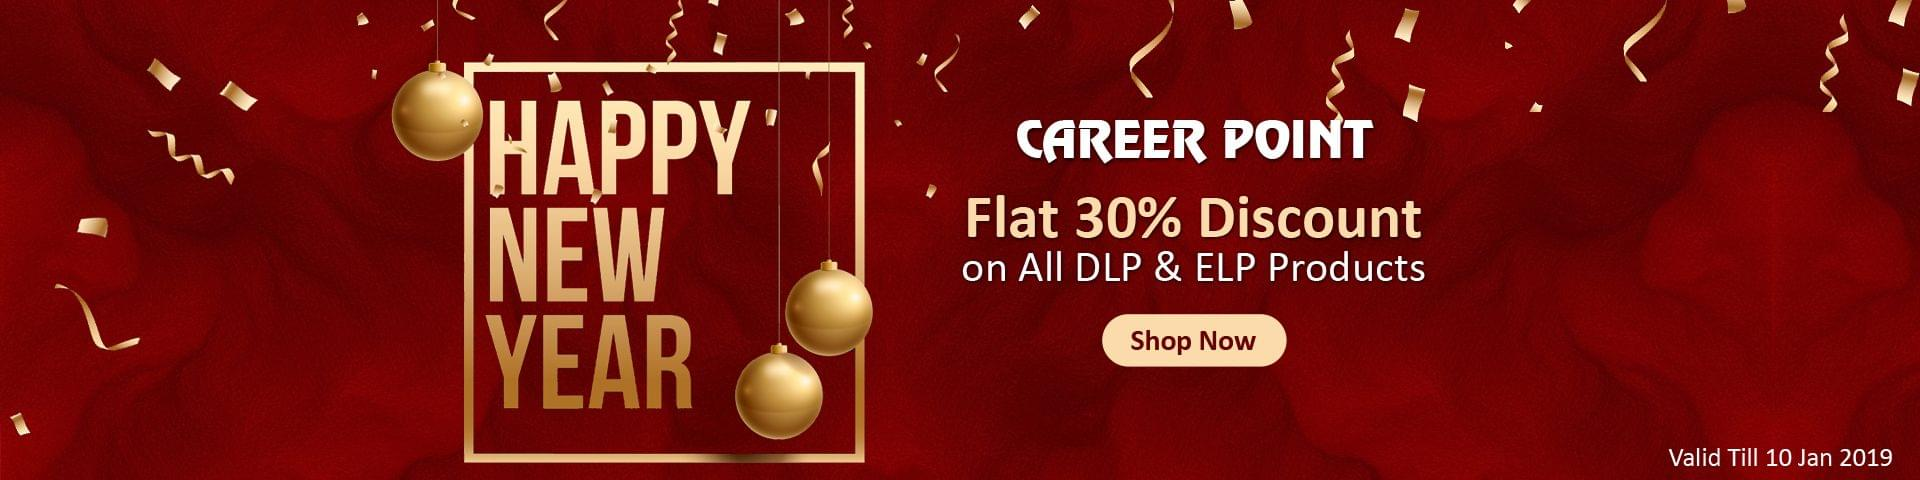 Flat 30% New Year Offer On DLP Products